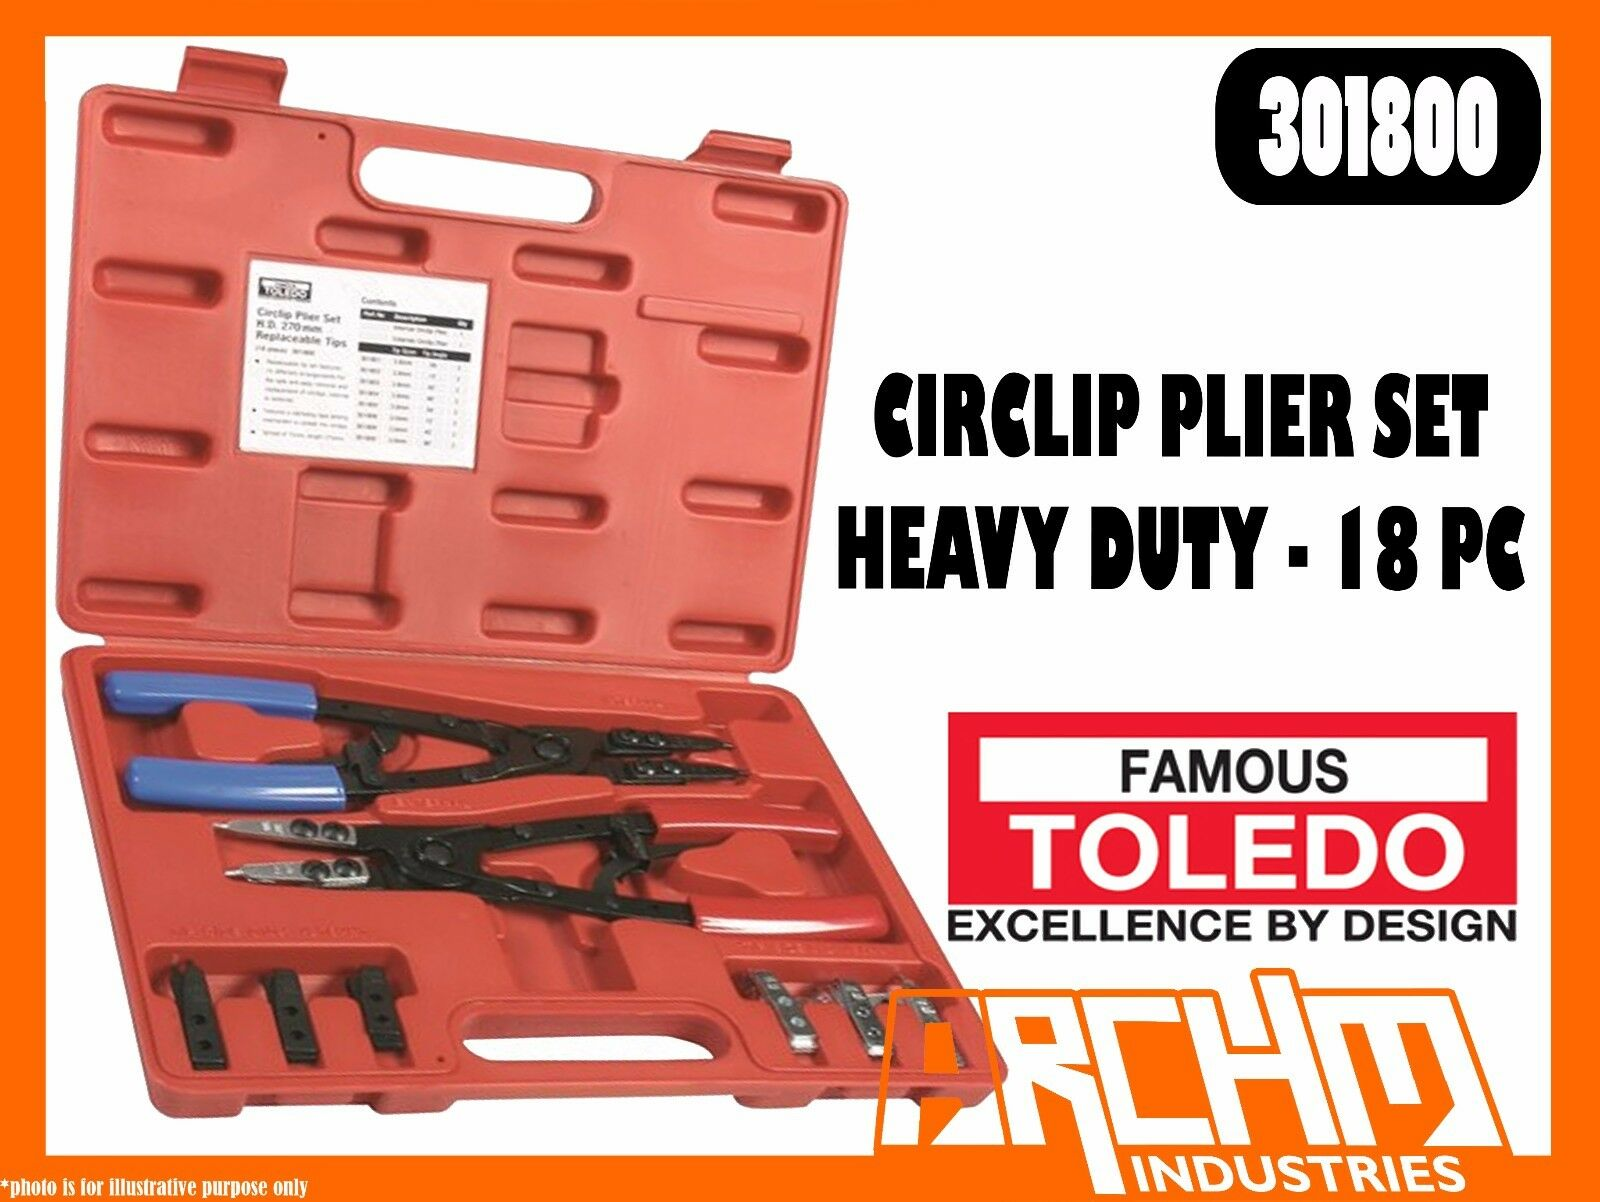 TOLEDO 301800 - CIRCLIP PLIER SET HEAVY DUTY 18 PC - UNIVERSAL INTERNAL EXTERNAL